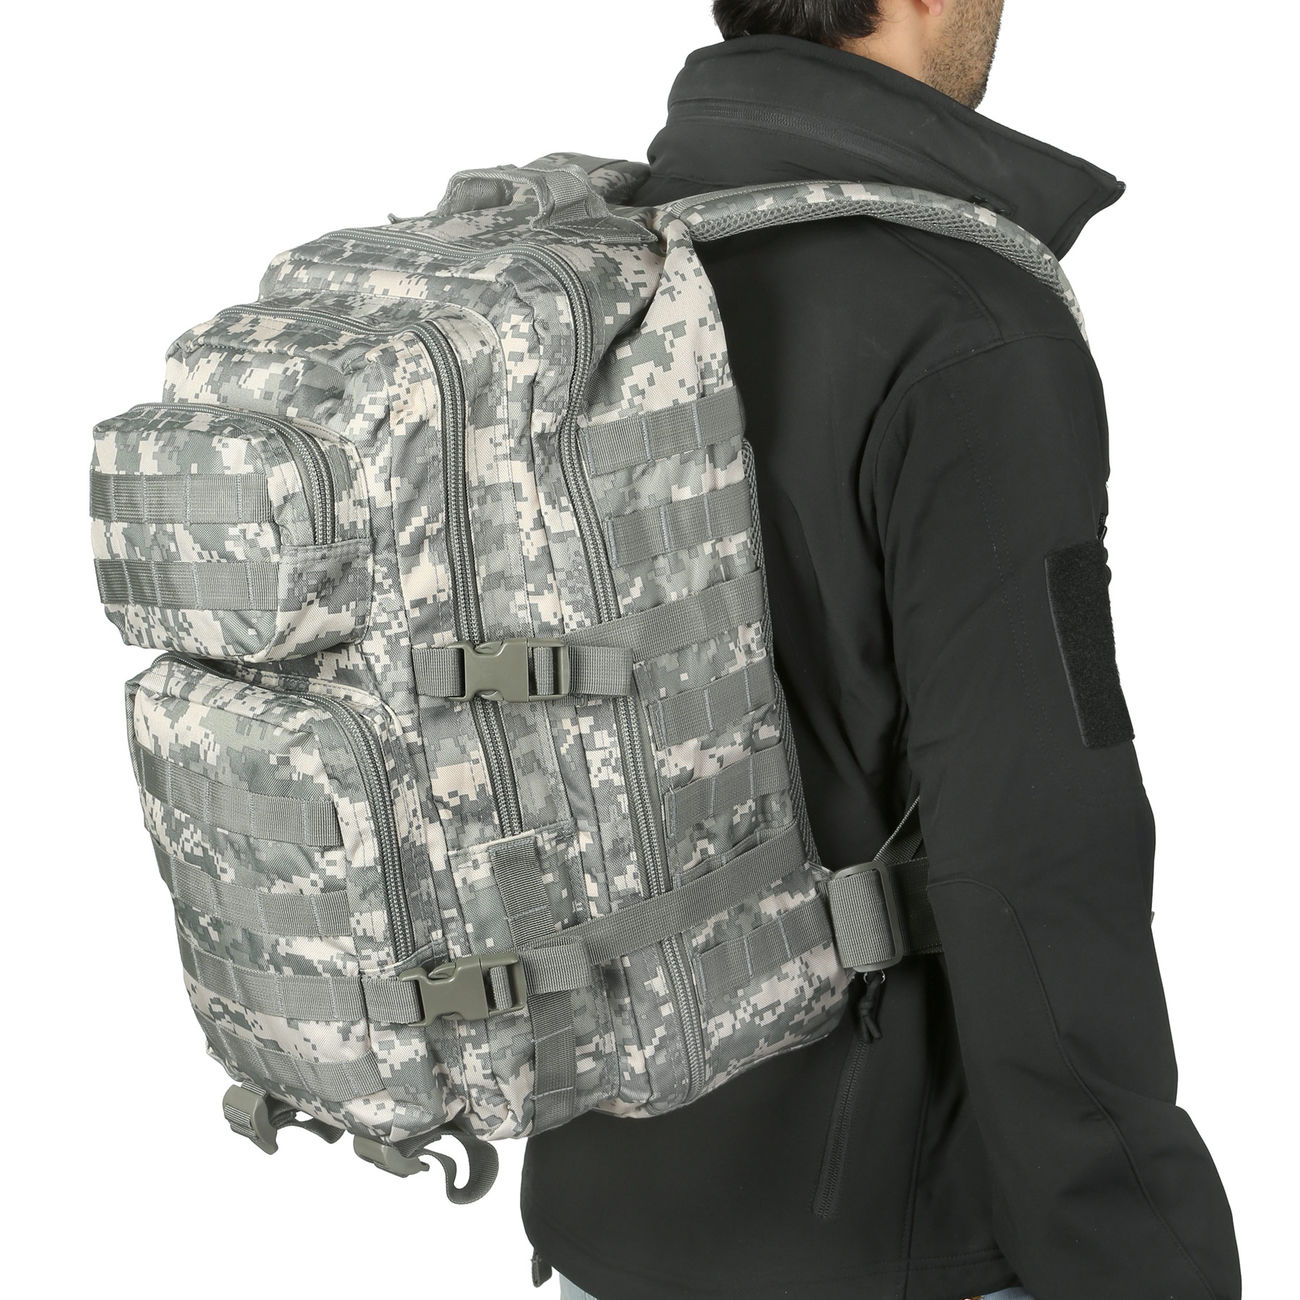 Mil-Tec Rucksack US Assault Pack II 40 Liter at-digital 5